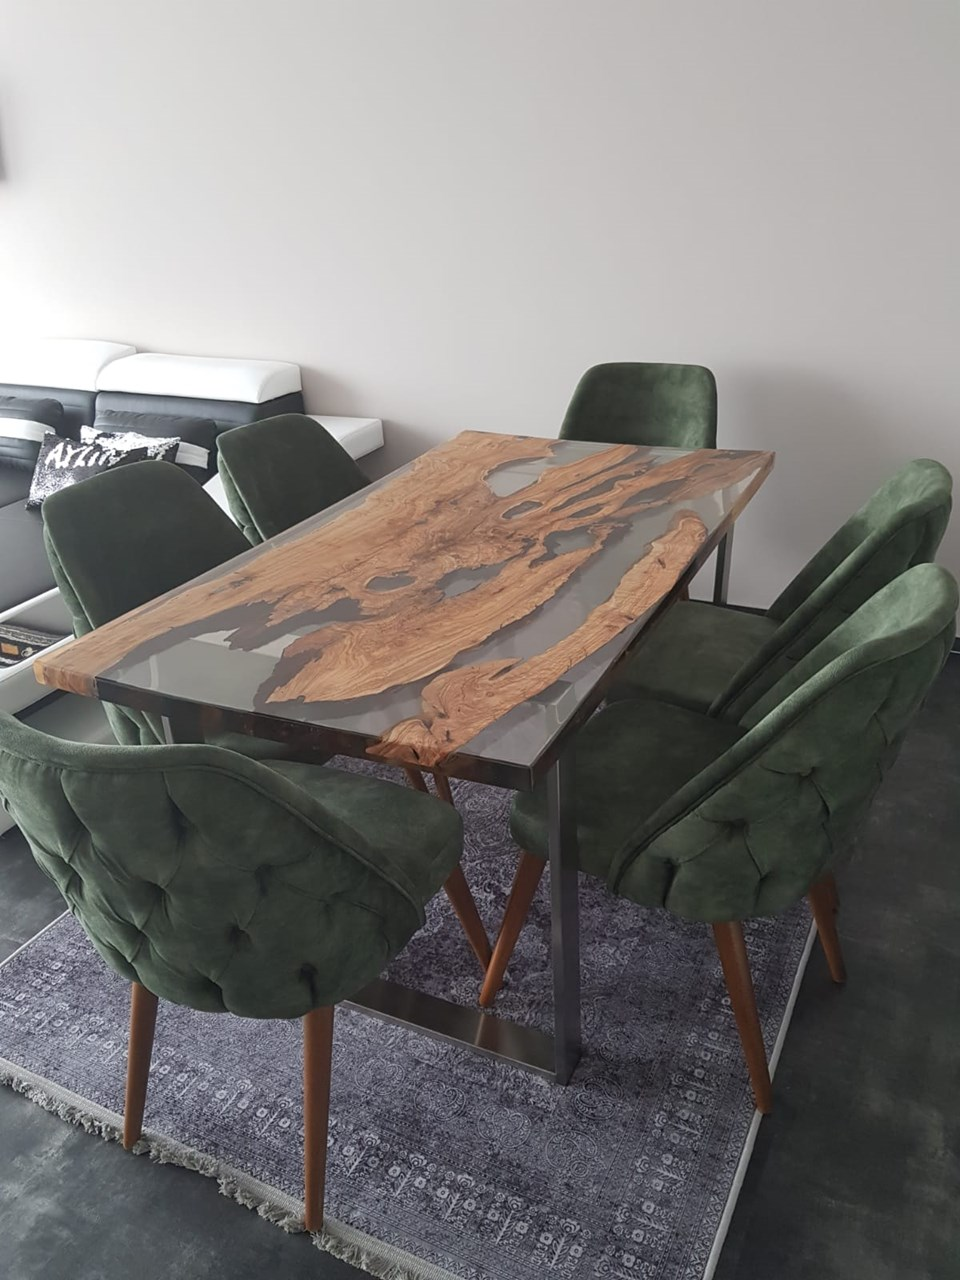 Olive Wood Epoxy Resin Dining Table'in resmi